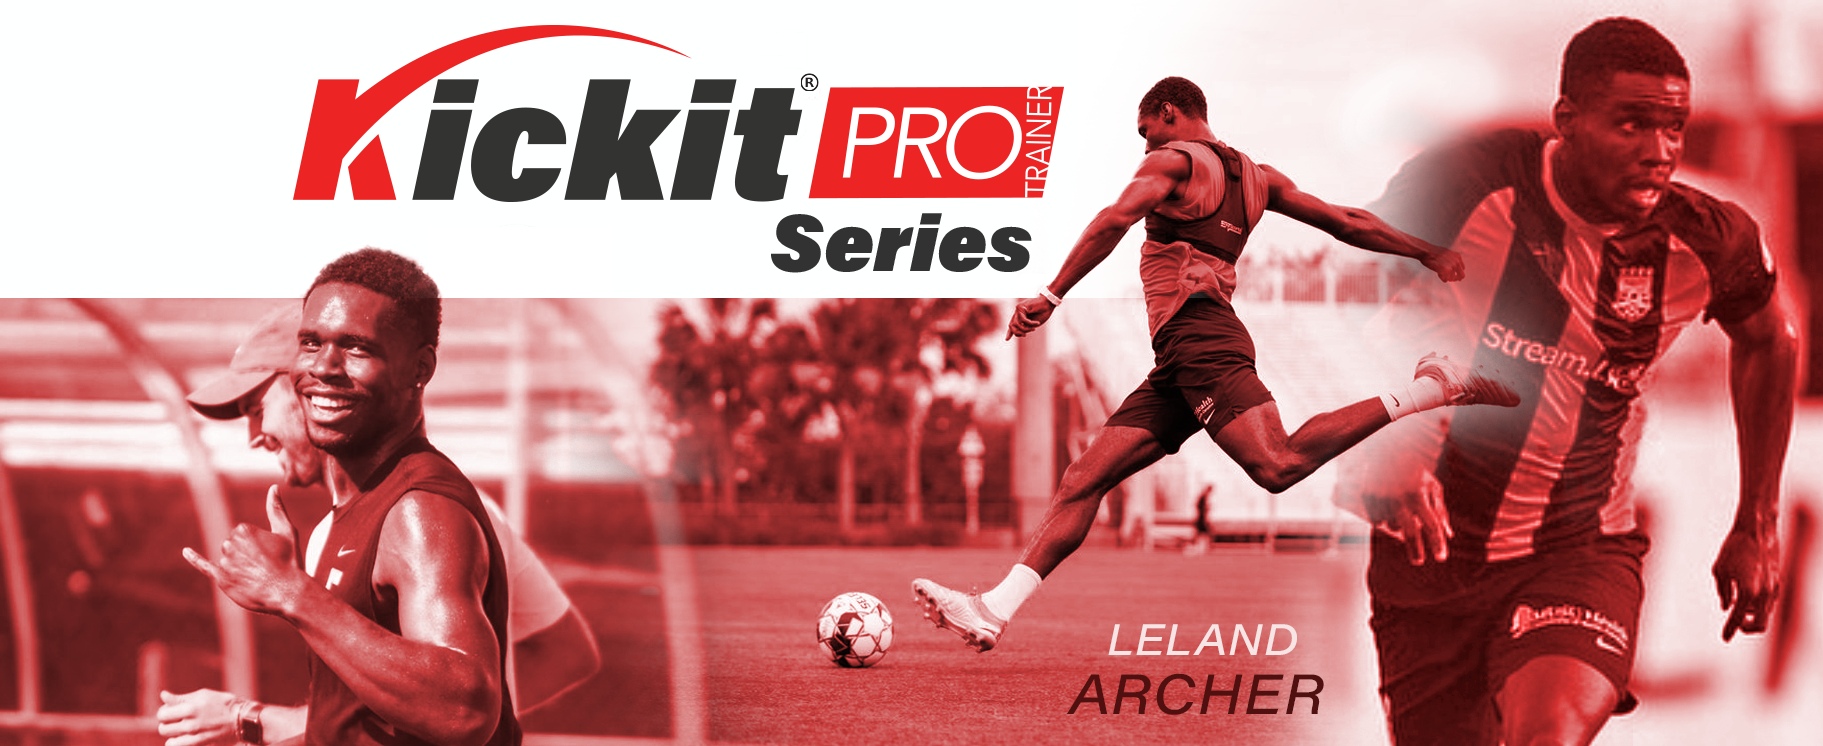 "Kickit Pro-Trainer Series: Leland Archer ""Rising Charleston Star"""